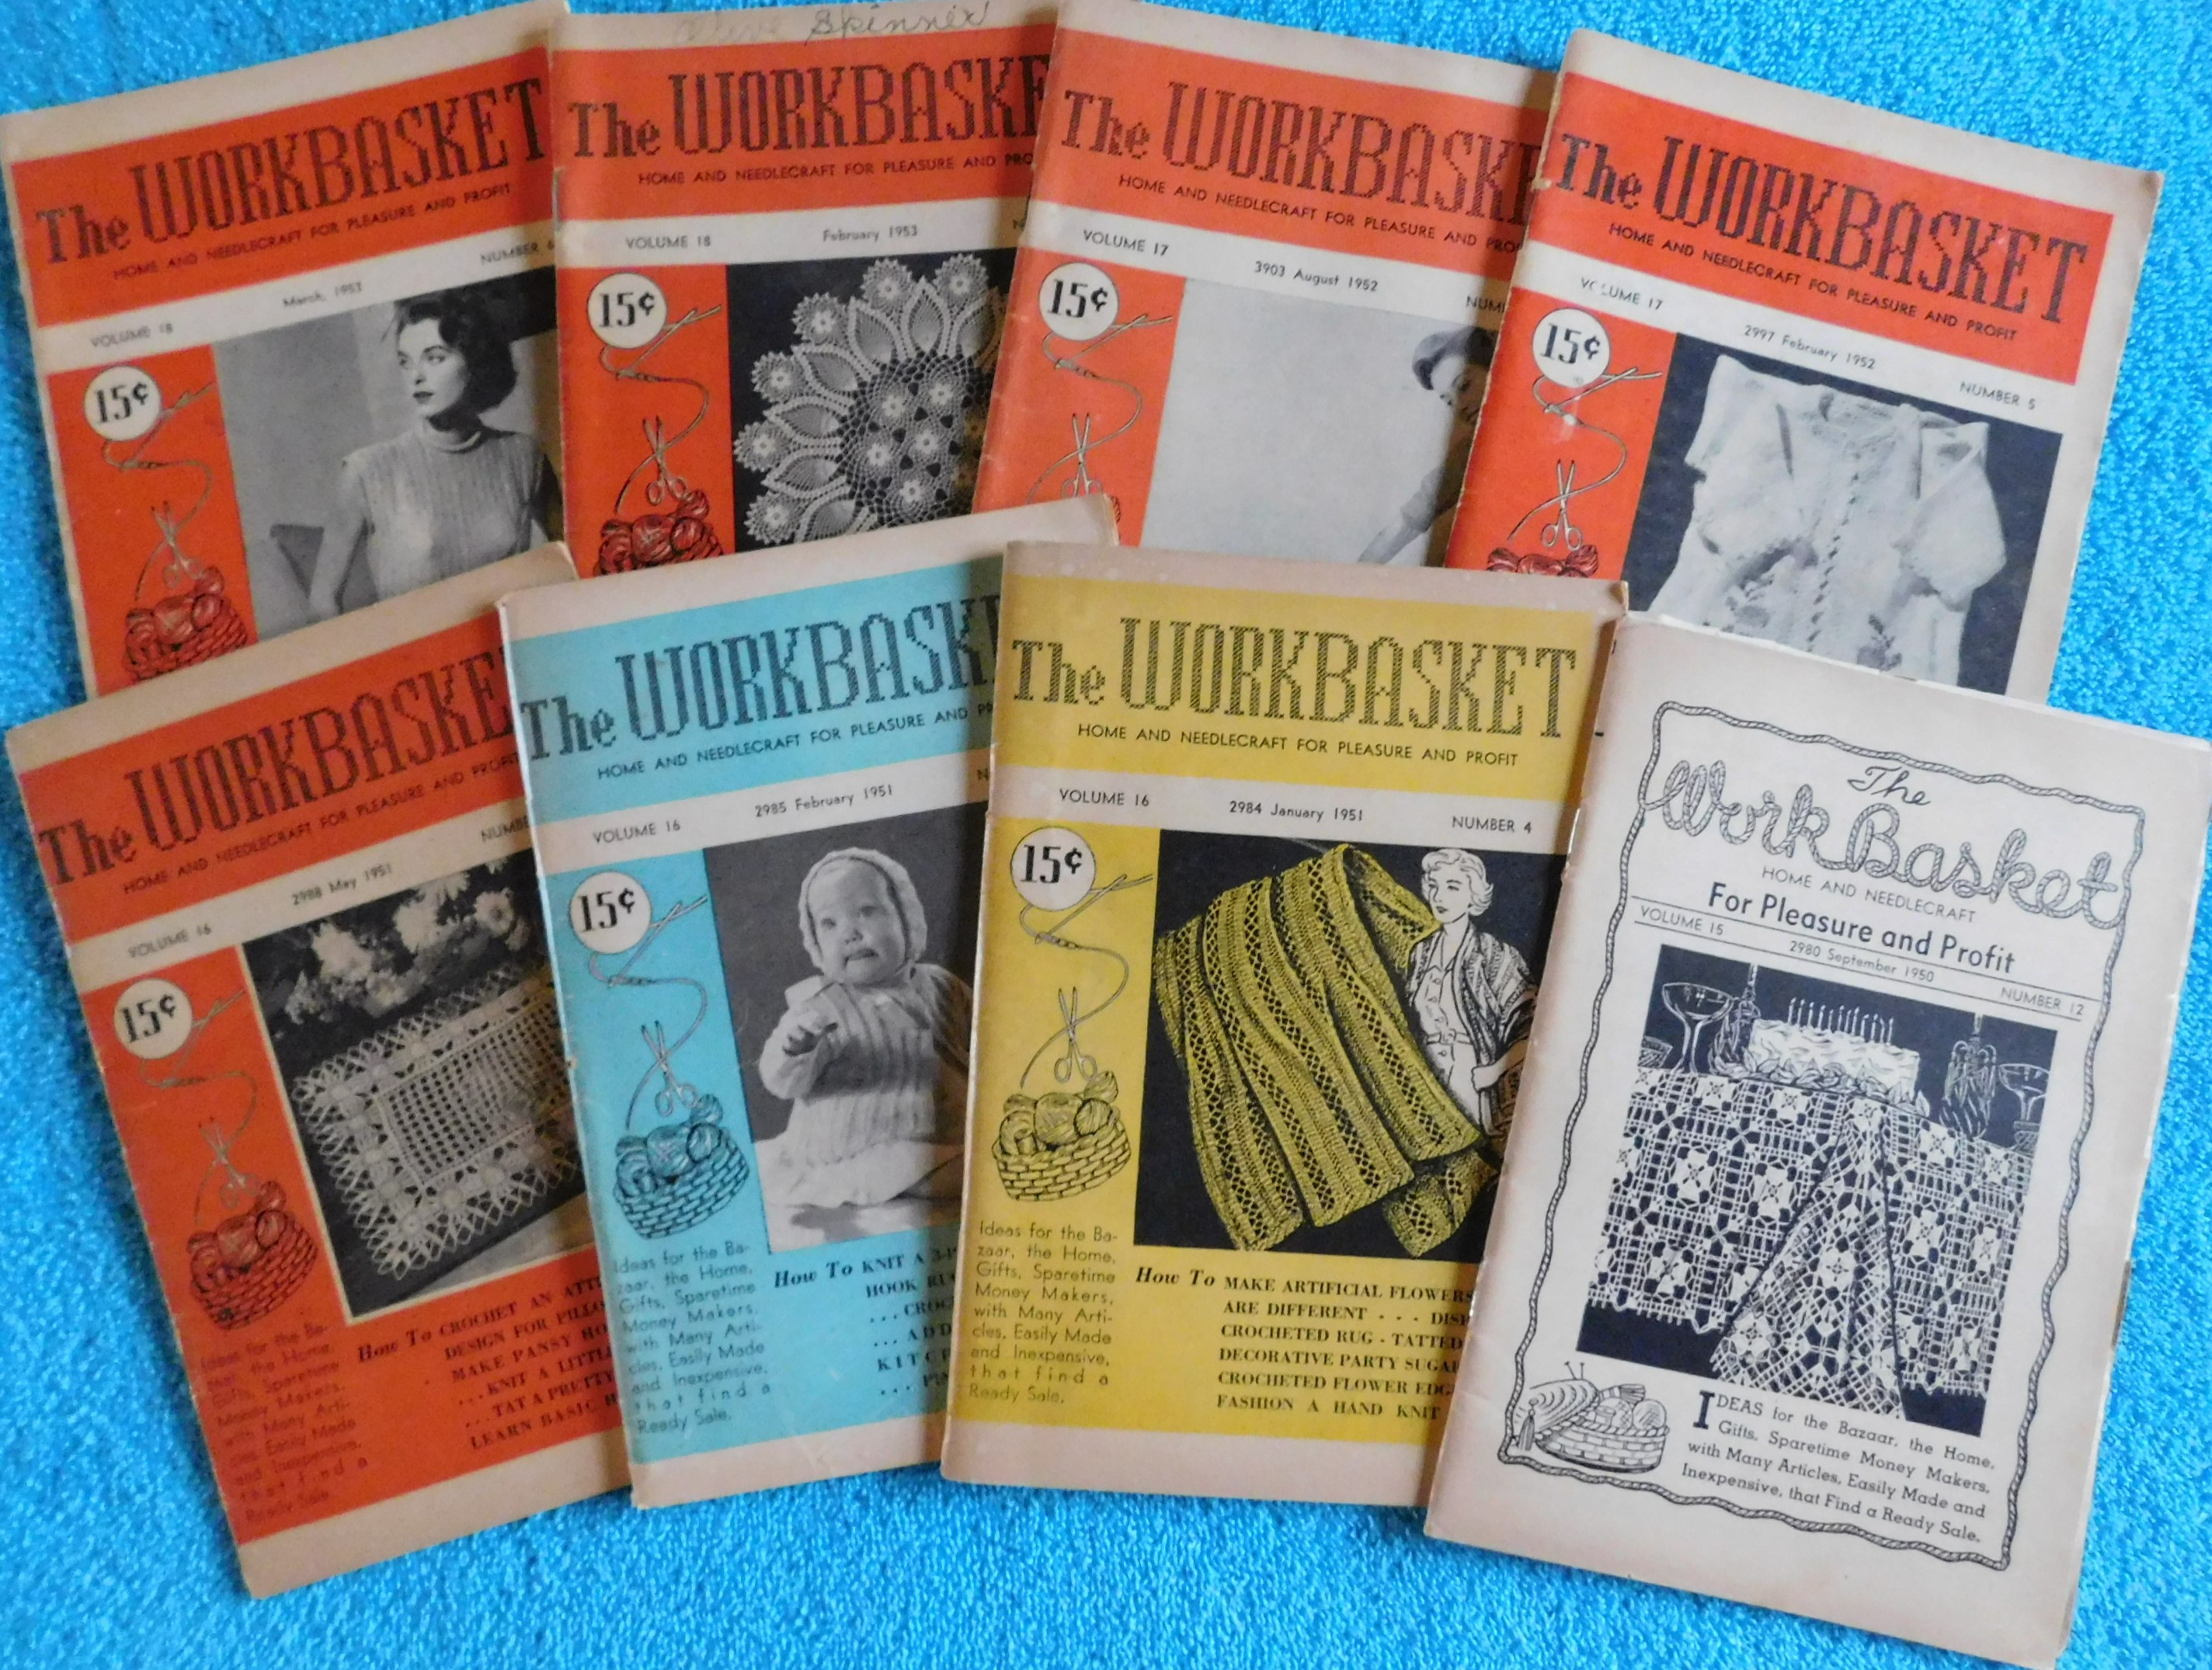 Lot of 8 The Workbasket Magazines from 1950, 1951, 1952 & 1953 | eBay